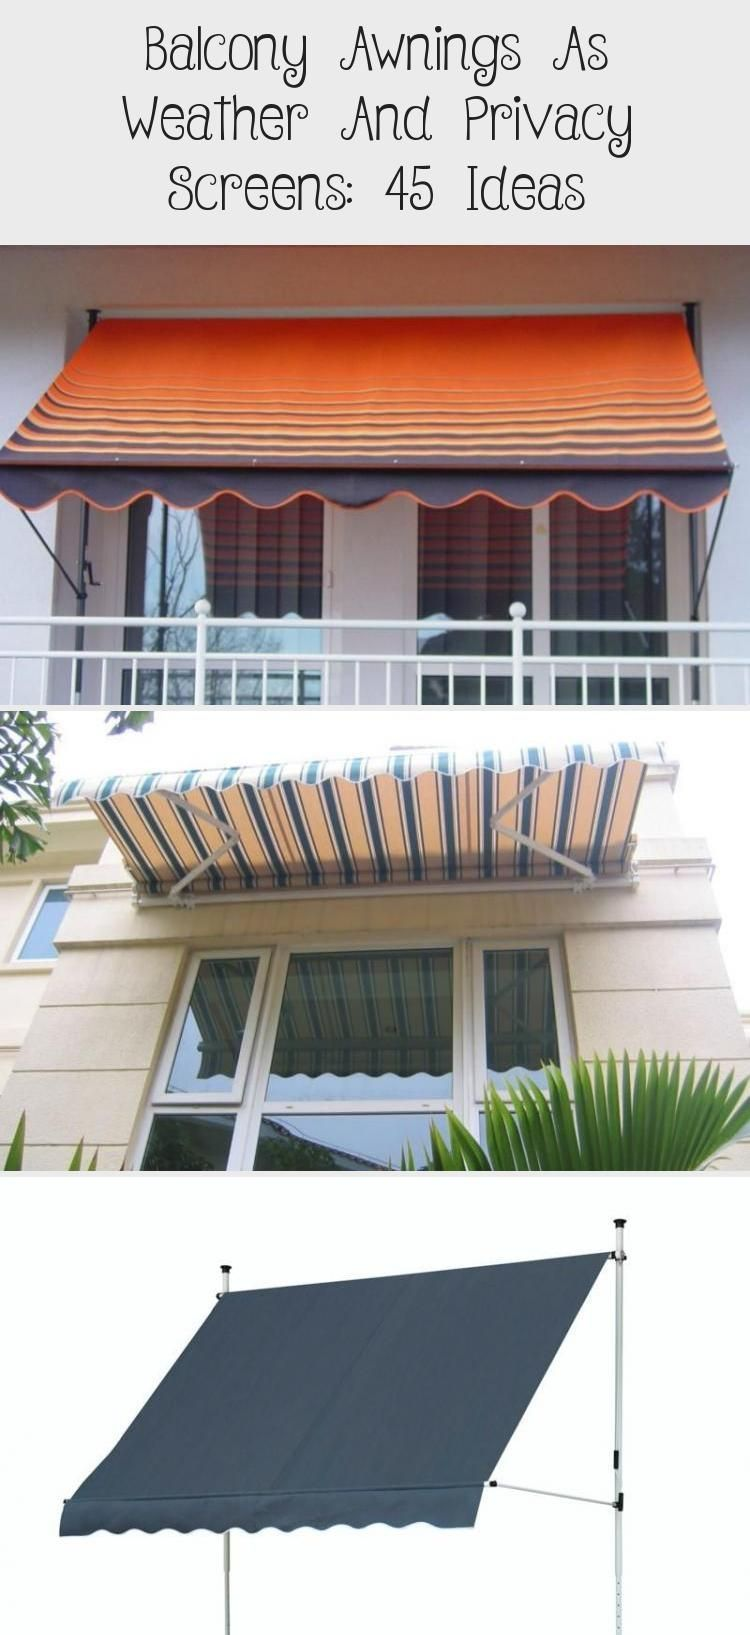 Balcony Awnings As Weather And Privacy Screens 45 Ideas Balconyprivacyscreen Balcony Awnings As Weather And Privacy Screens 45 Ideas Pergolaroof Bamboofenc Awning Privacy Screen Patio Privacy Screen